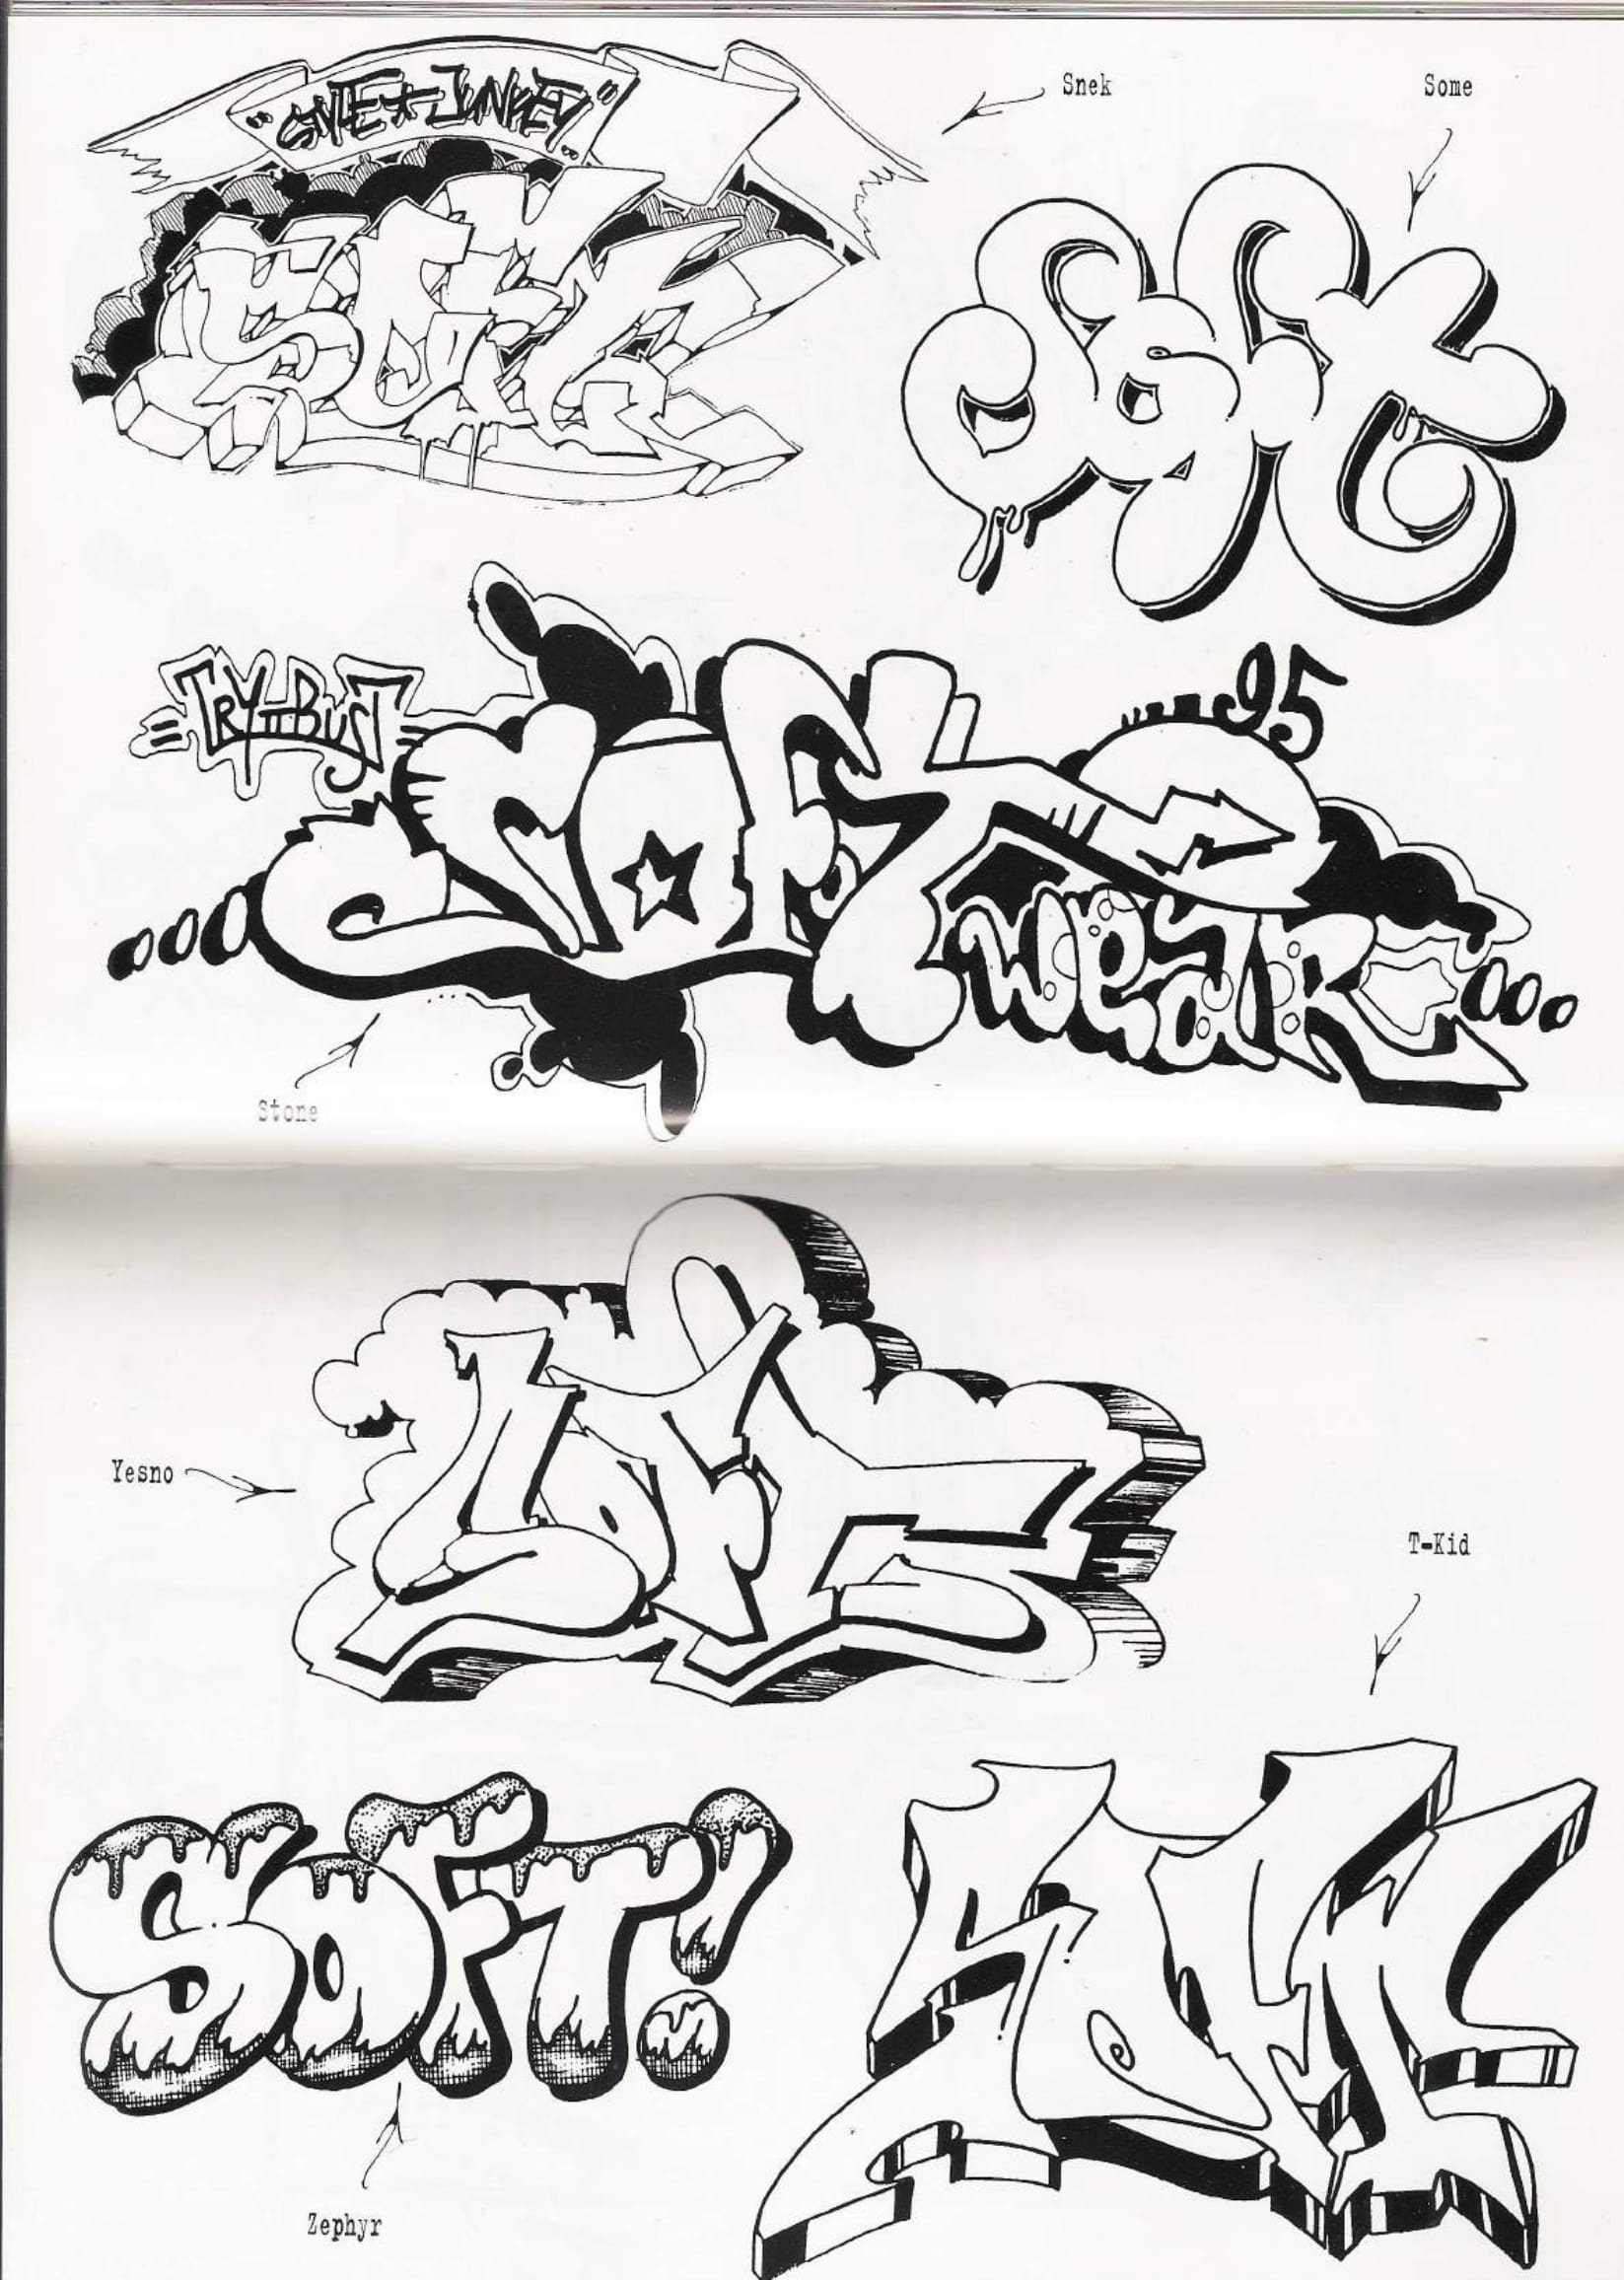 Backjumps.-.Sketchbook-AEROHOLICS-compressed-64.jpg